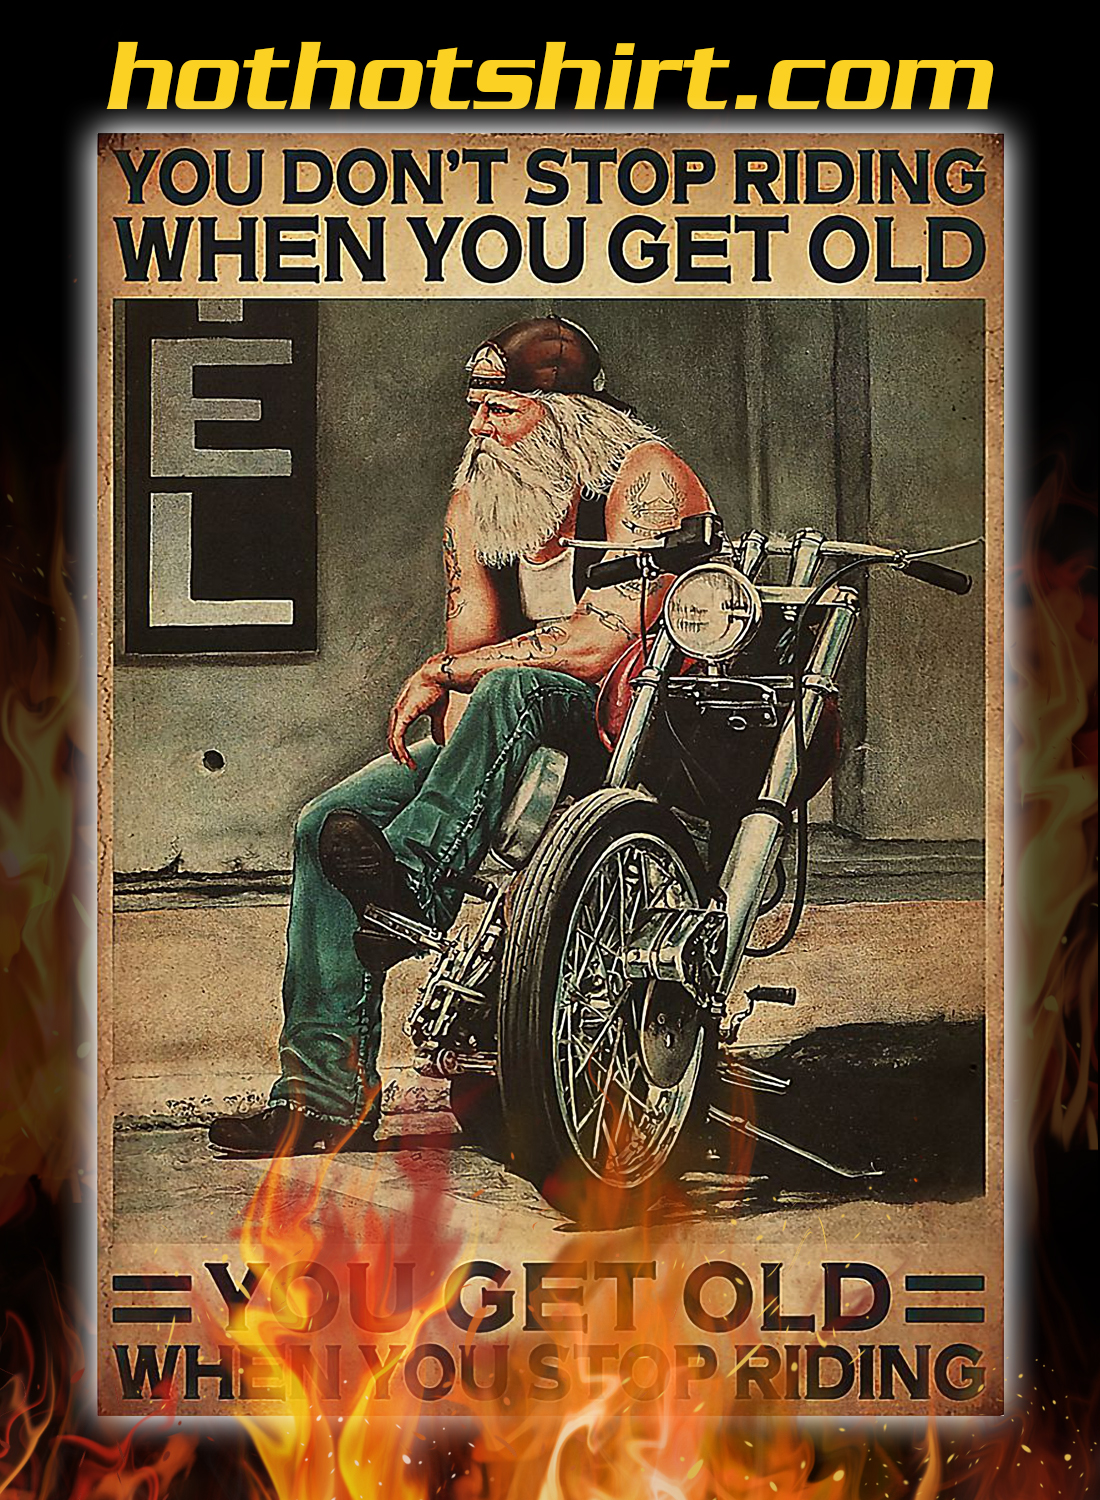 Old biker Motorcycle you don't stop riding poster 1